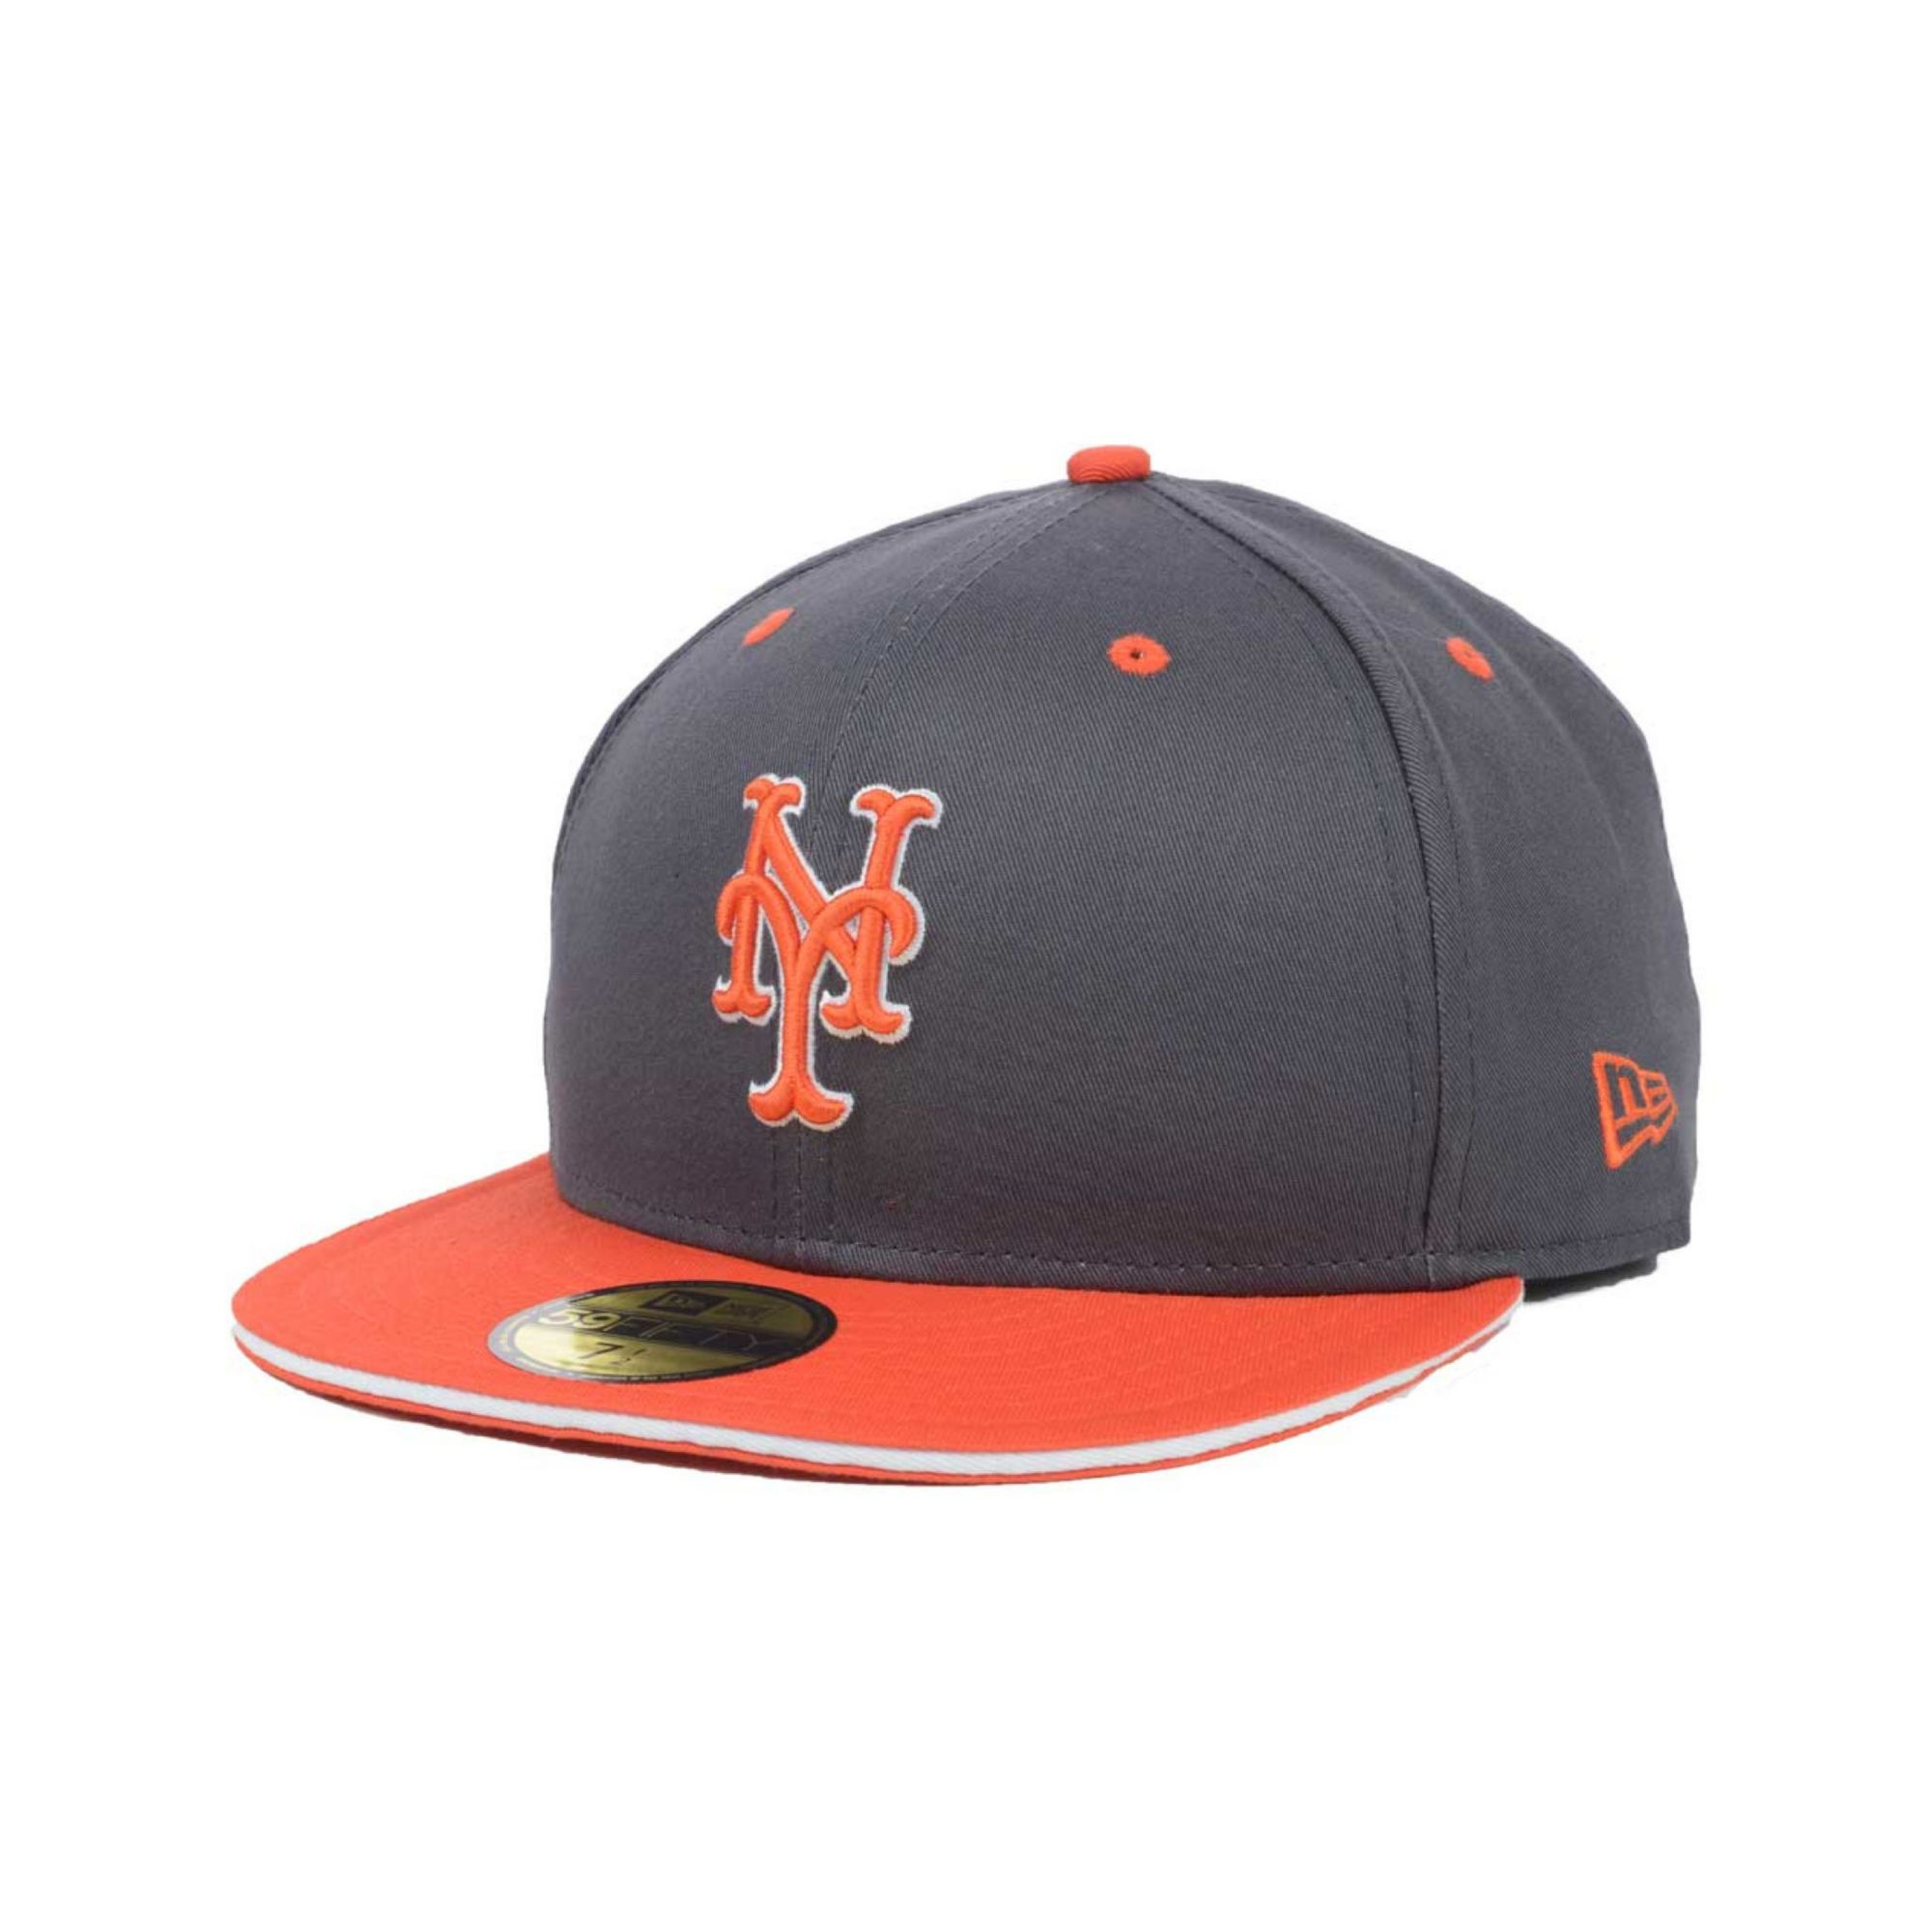 newest 893db 8d144 ... 9fifty mlb vintage snapback hat 71dc4 59844  50% off lyst ktz new york  mets opening day 59fifty cap in gray for men